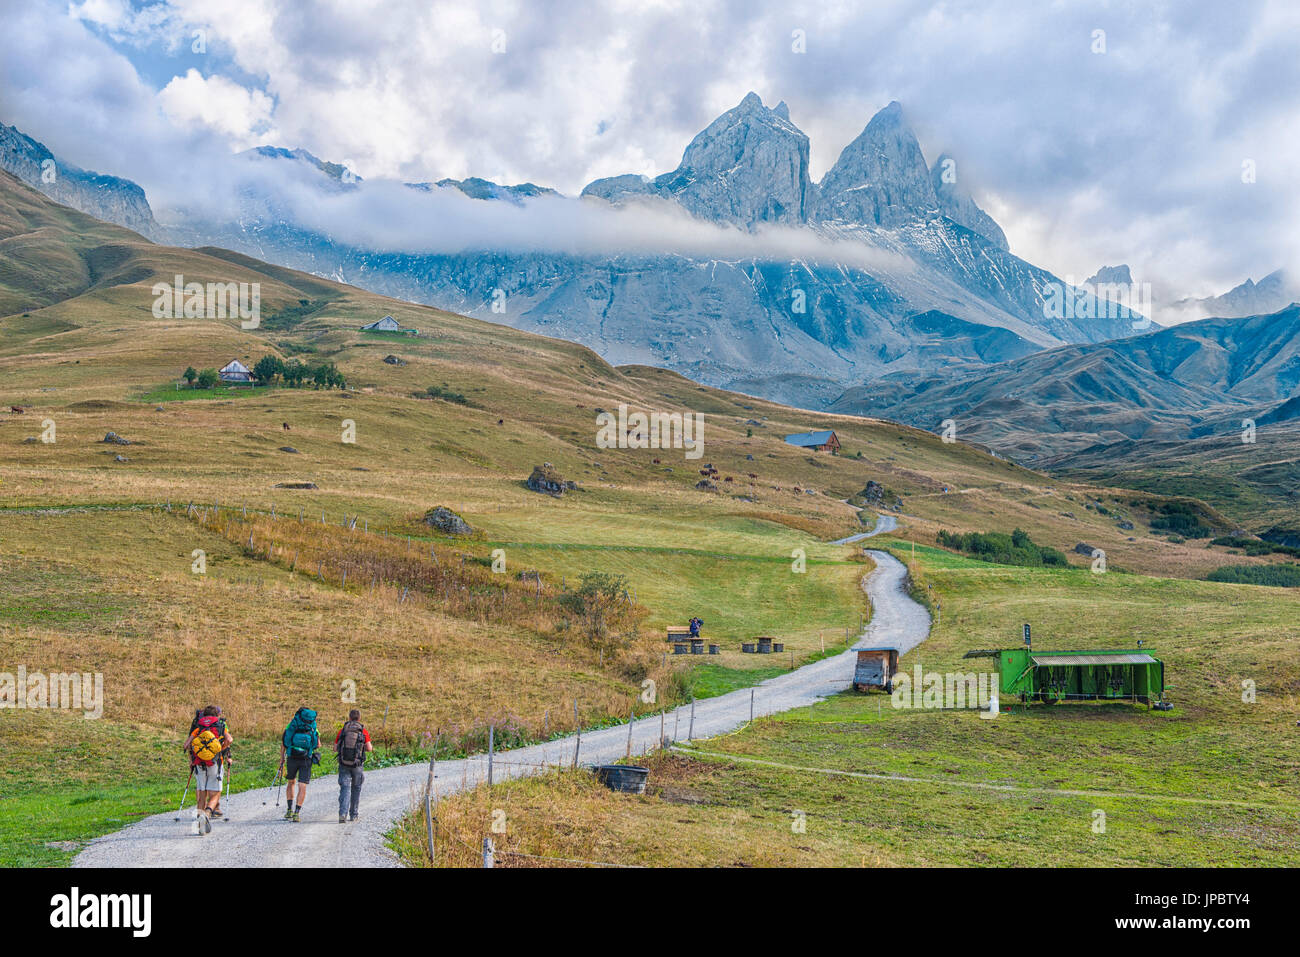 Hikers in front of the Aiguille d'Arves, Ecrins, Savoie, France Stock Photo